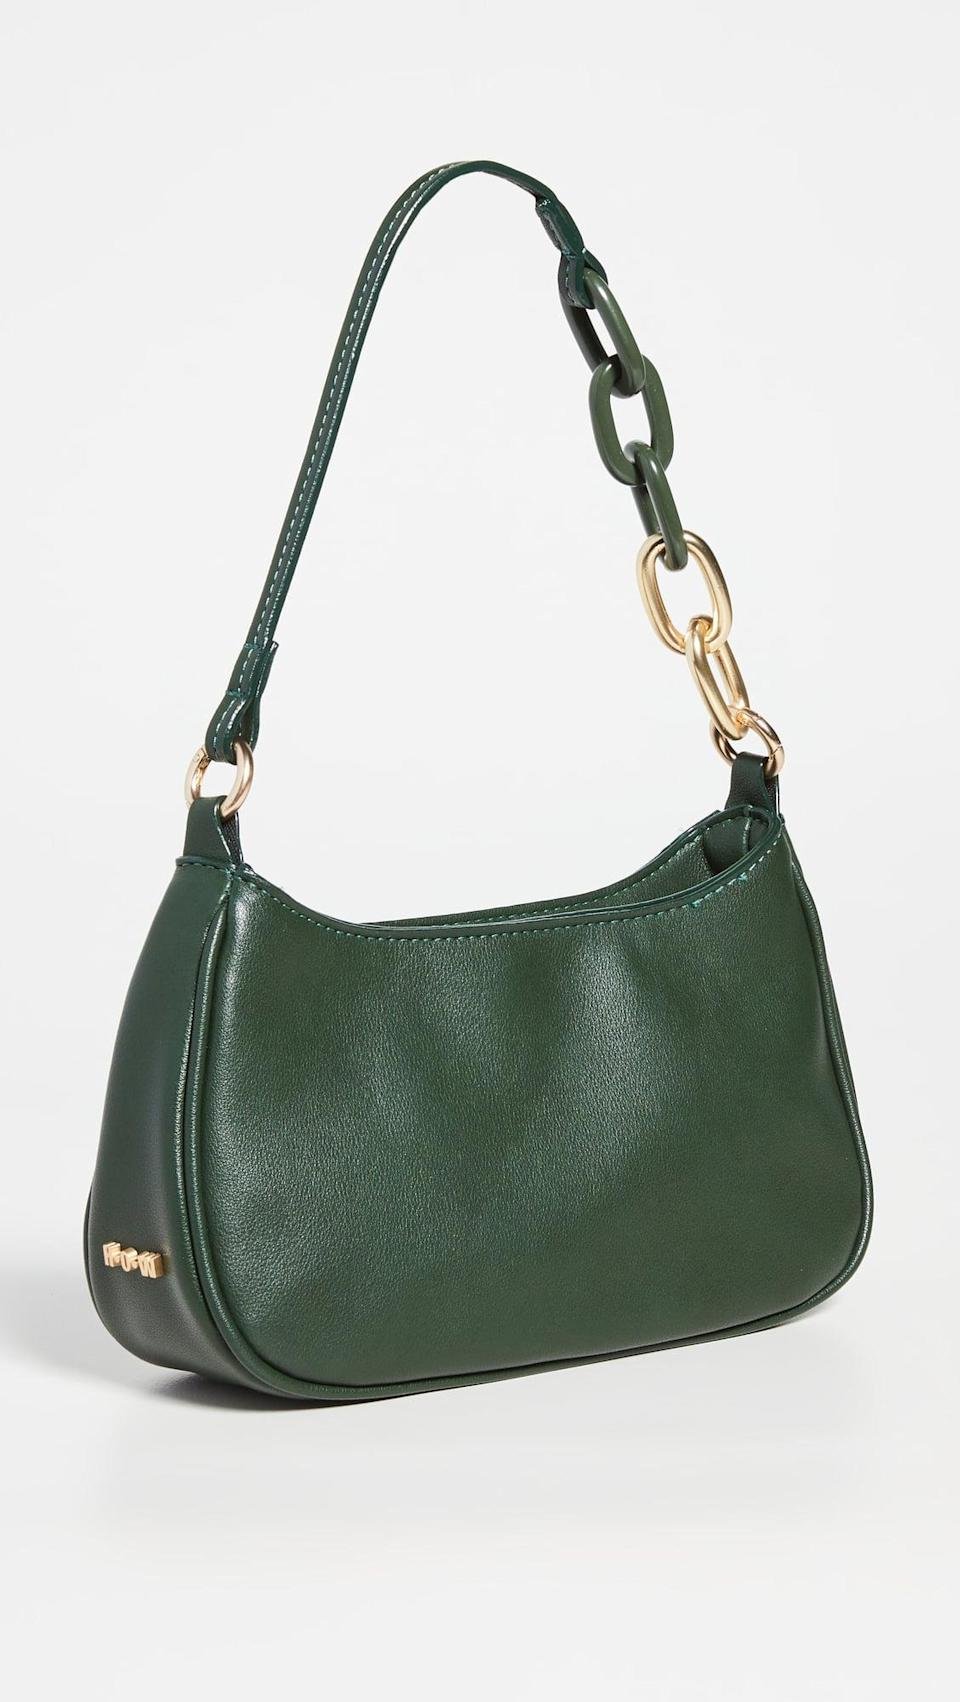 <p>This green <span>House of Want H.O.W. We Evolve Baguette</span> ($88) is so fun. It can be worn as a shoulder bag or crossboy, which I love.</p>